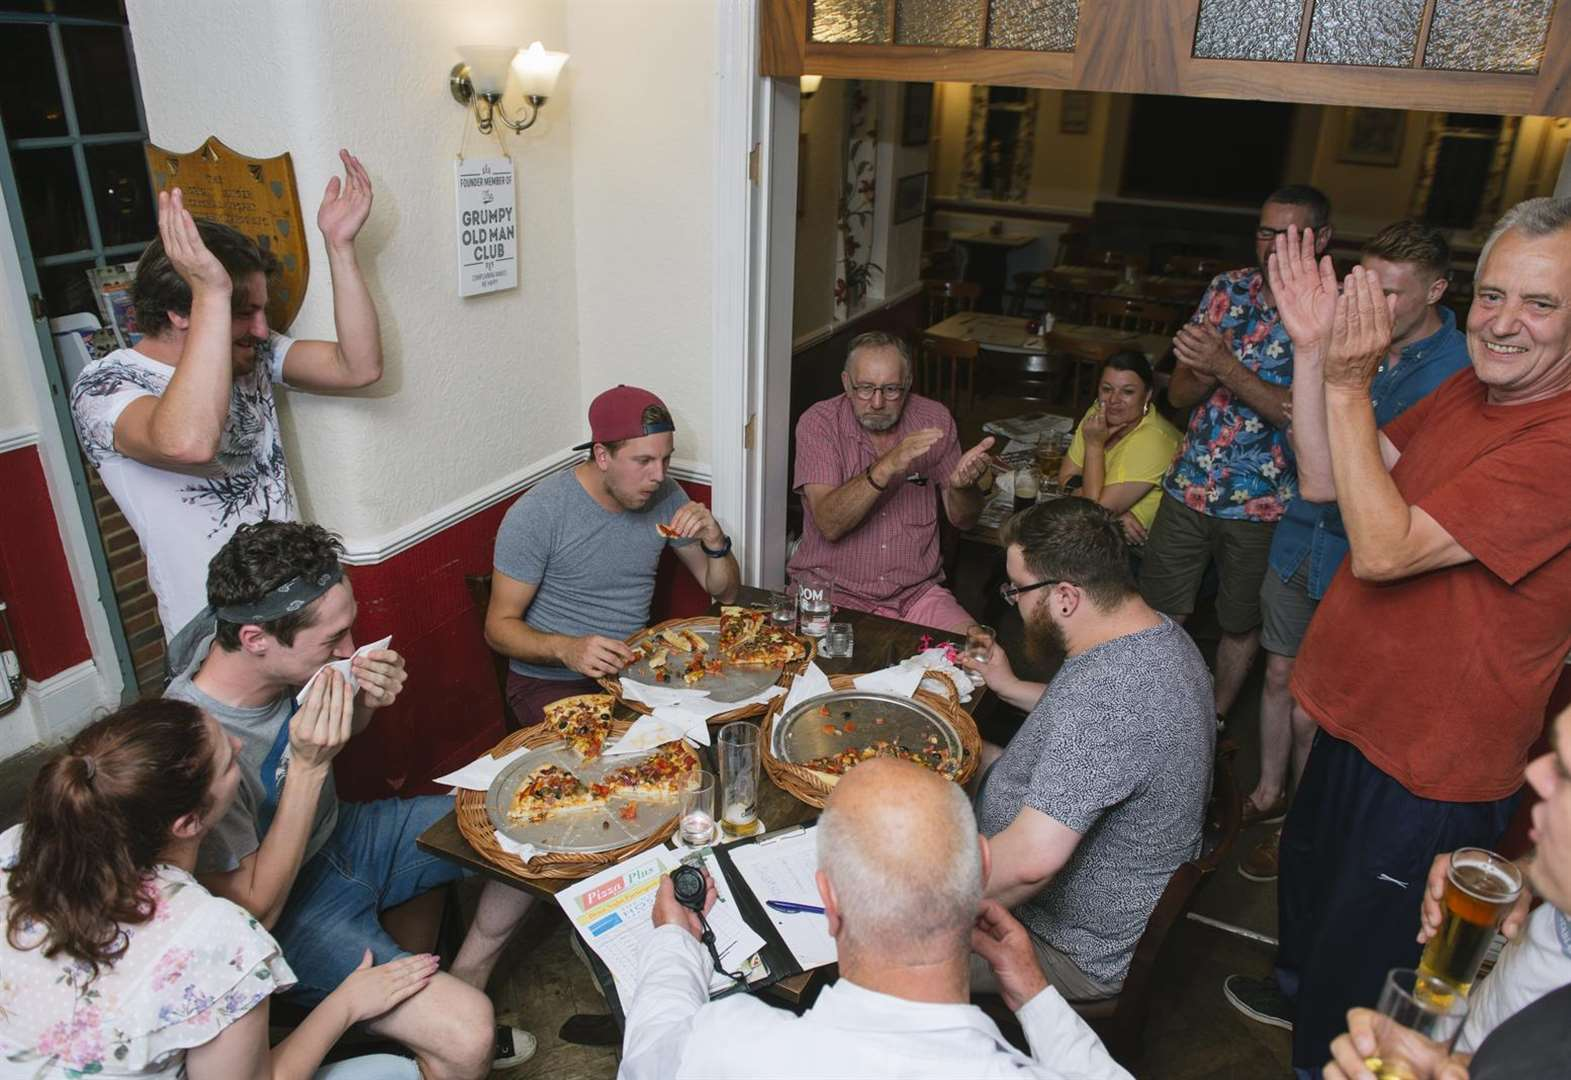 Pubgoers grab a pizza the action in charity task